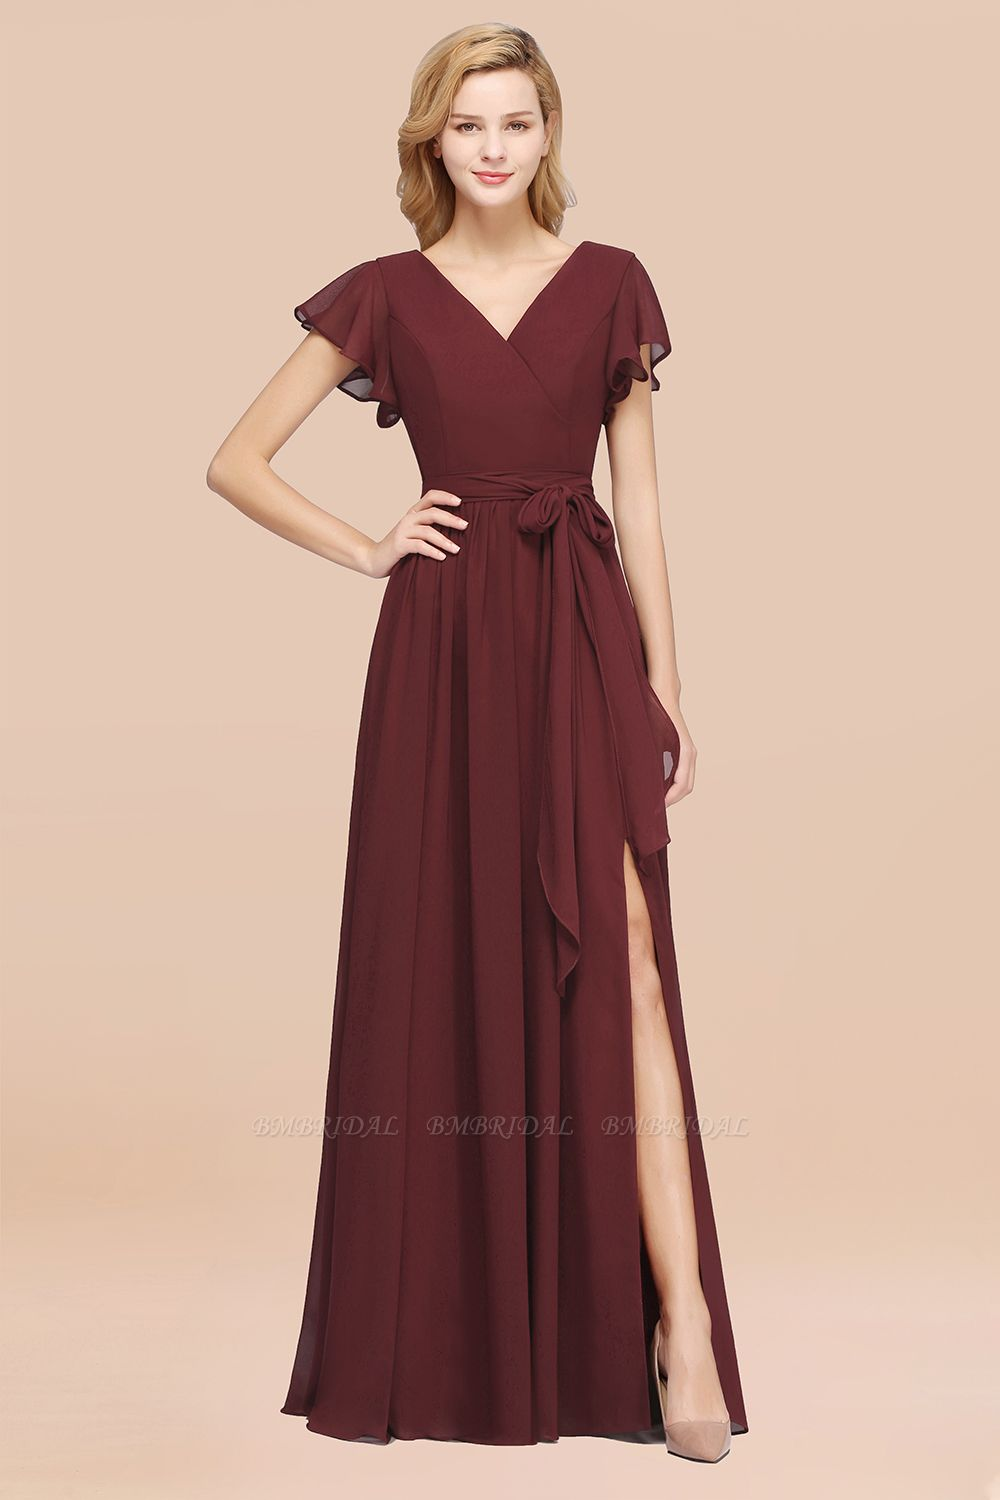 BMbridal Burgundy V-Neck Long Bridesmaid Dress With Short-Sleeves